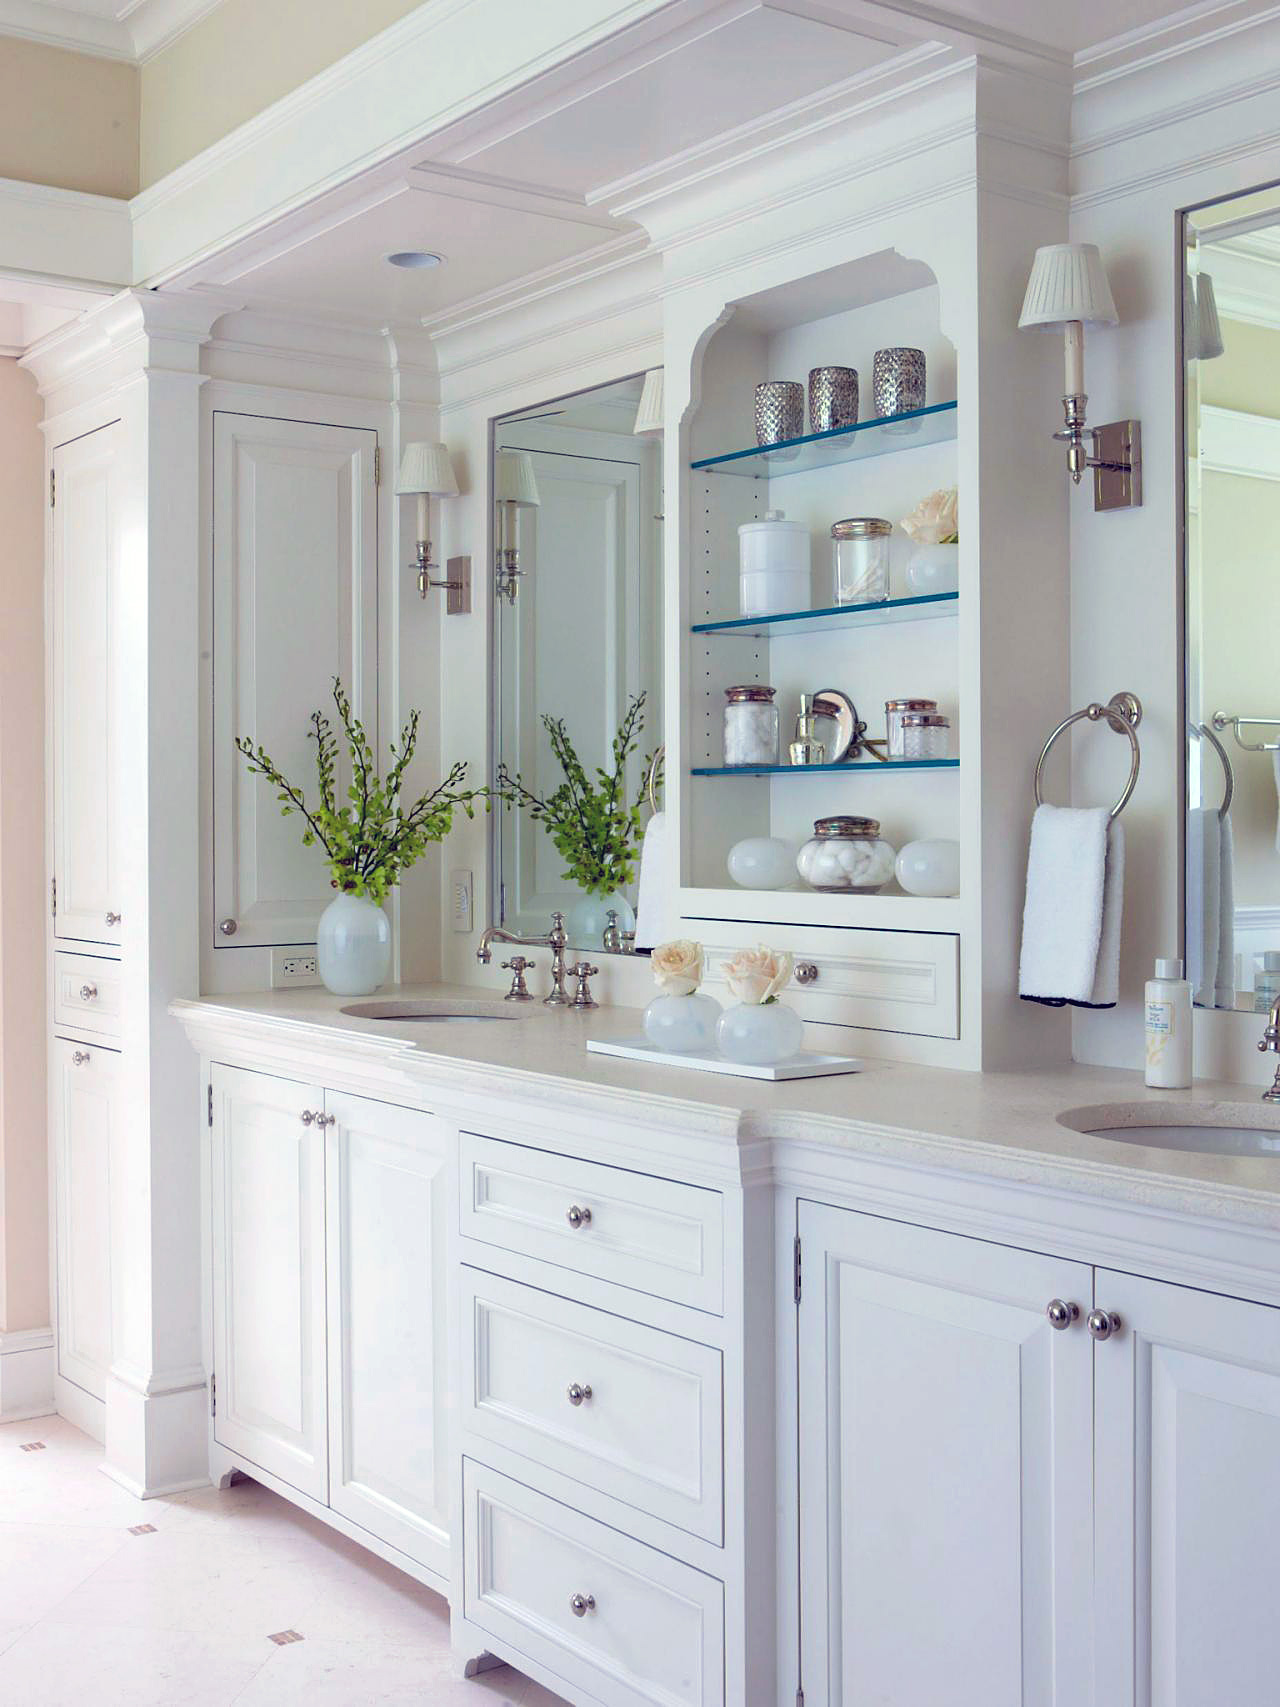 use white color to achieve a timeless bathroom design - Bathroom Cabinets Colors